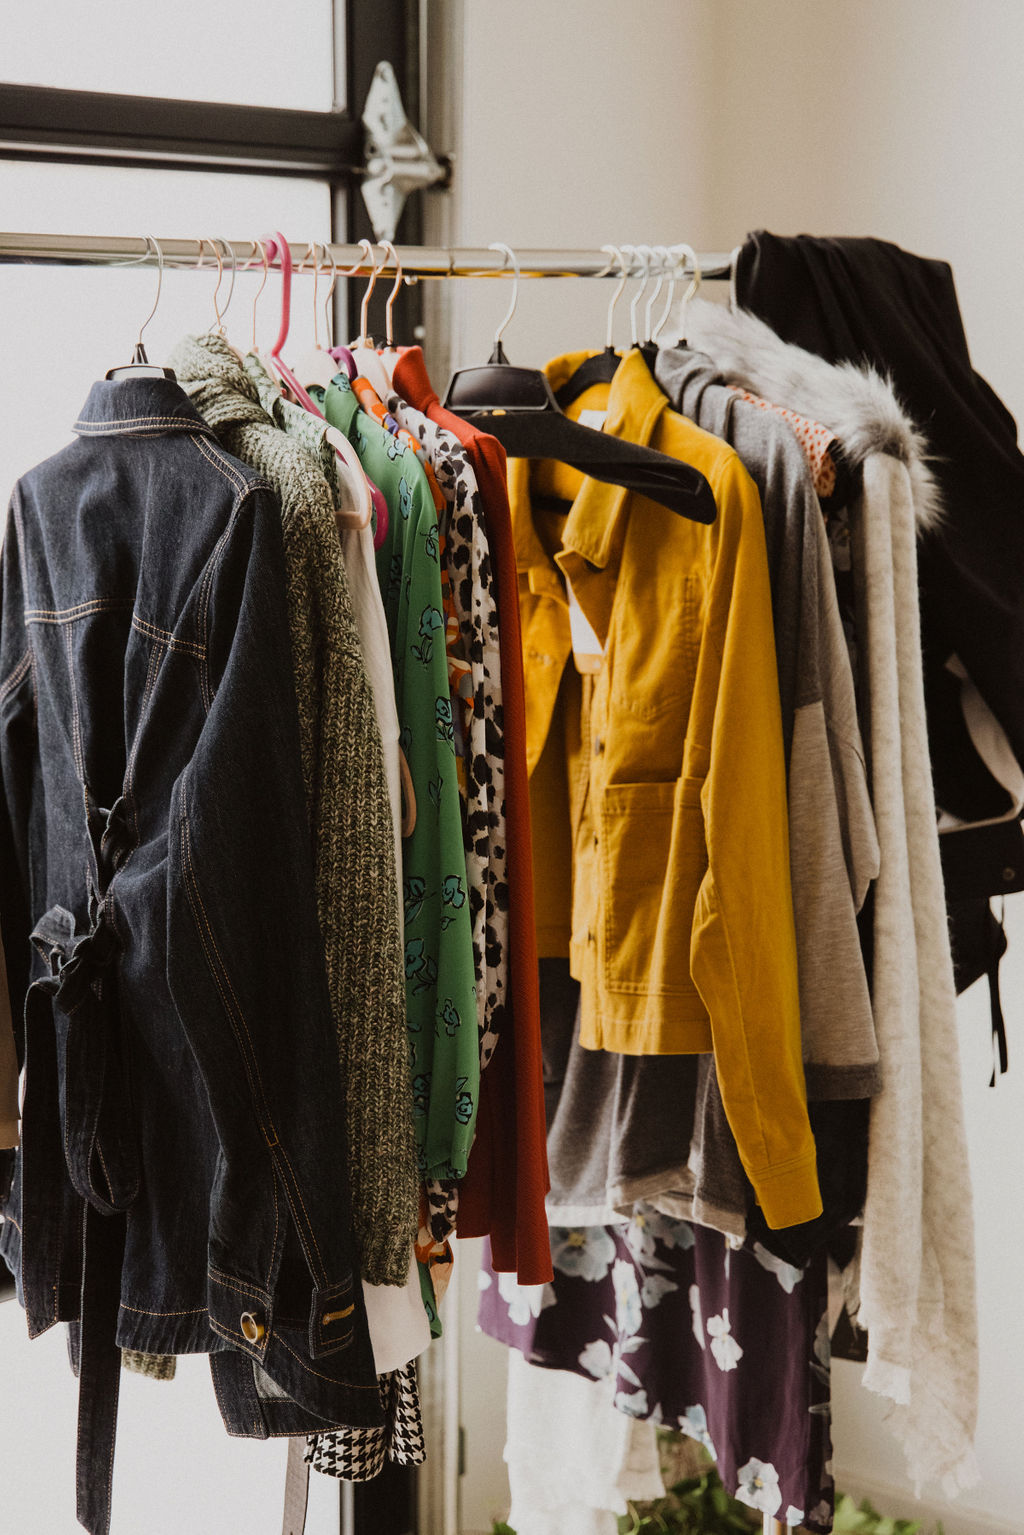 Barbara crouch can help you build closet confidence!